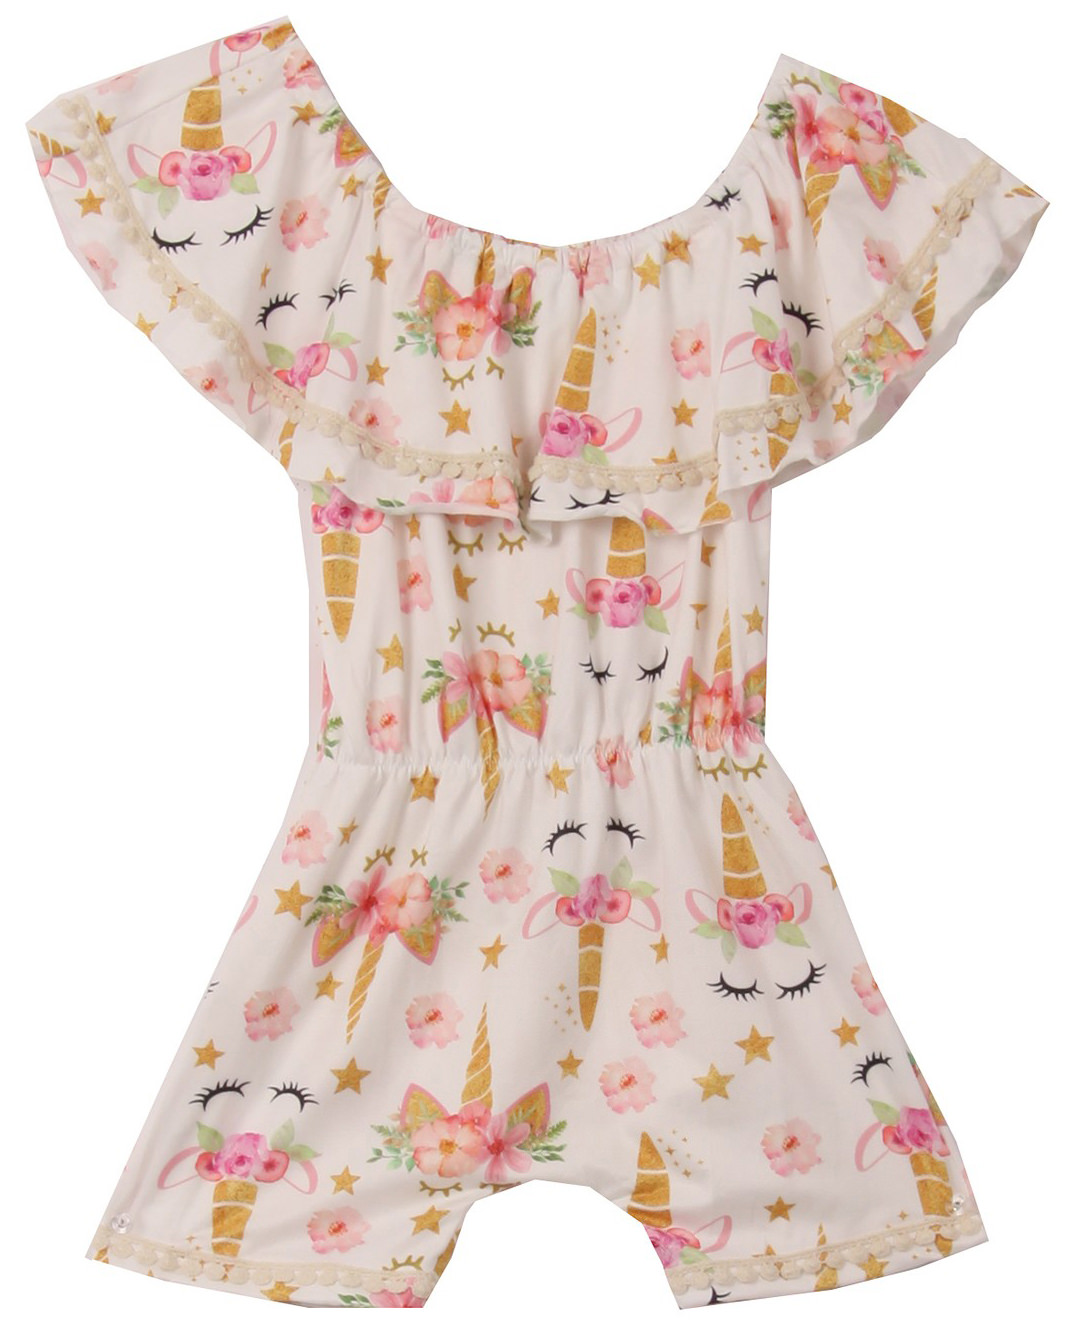 Toddler Girls Floral Unicorn Off Shoulder Birthday Party Romper Clothing Gold 2T XS (R301-04)